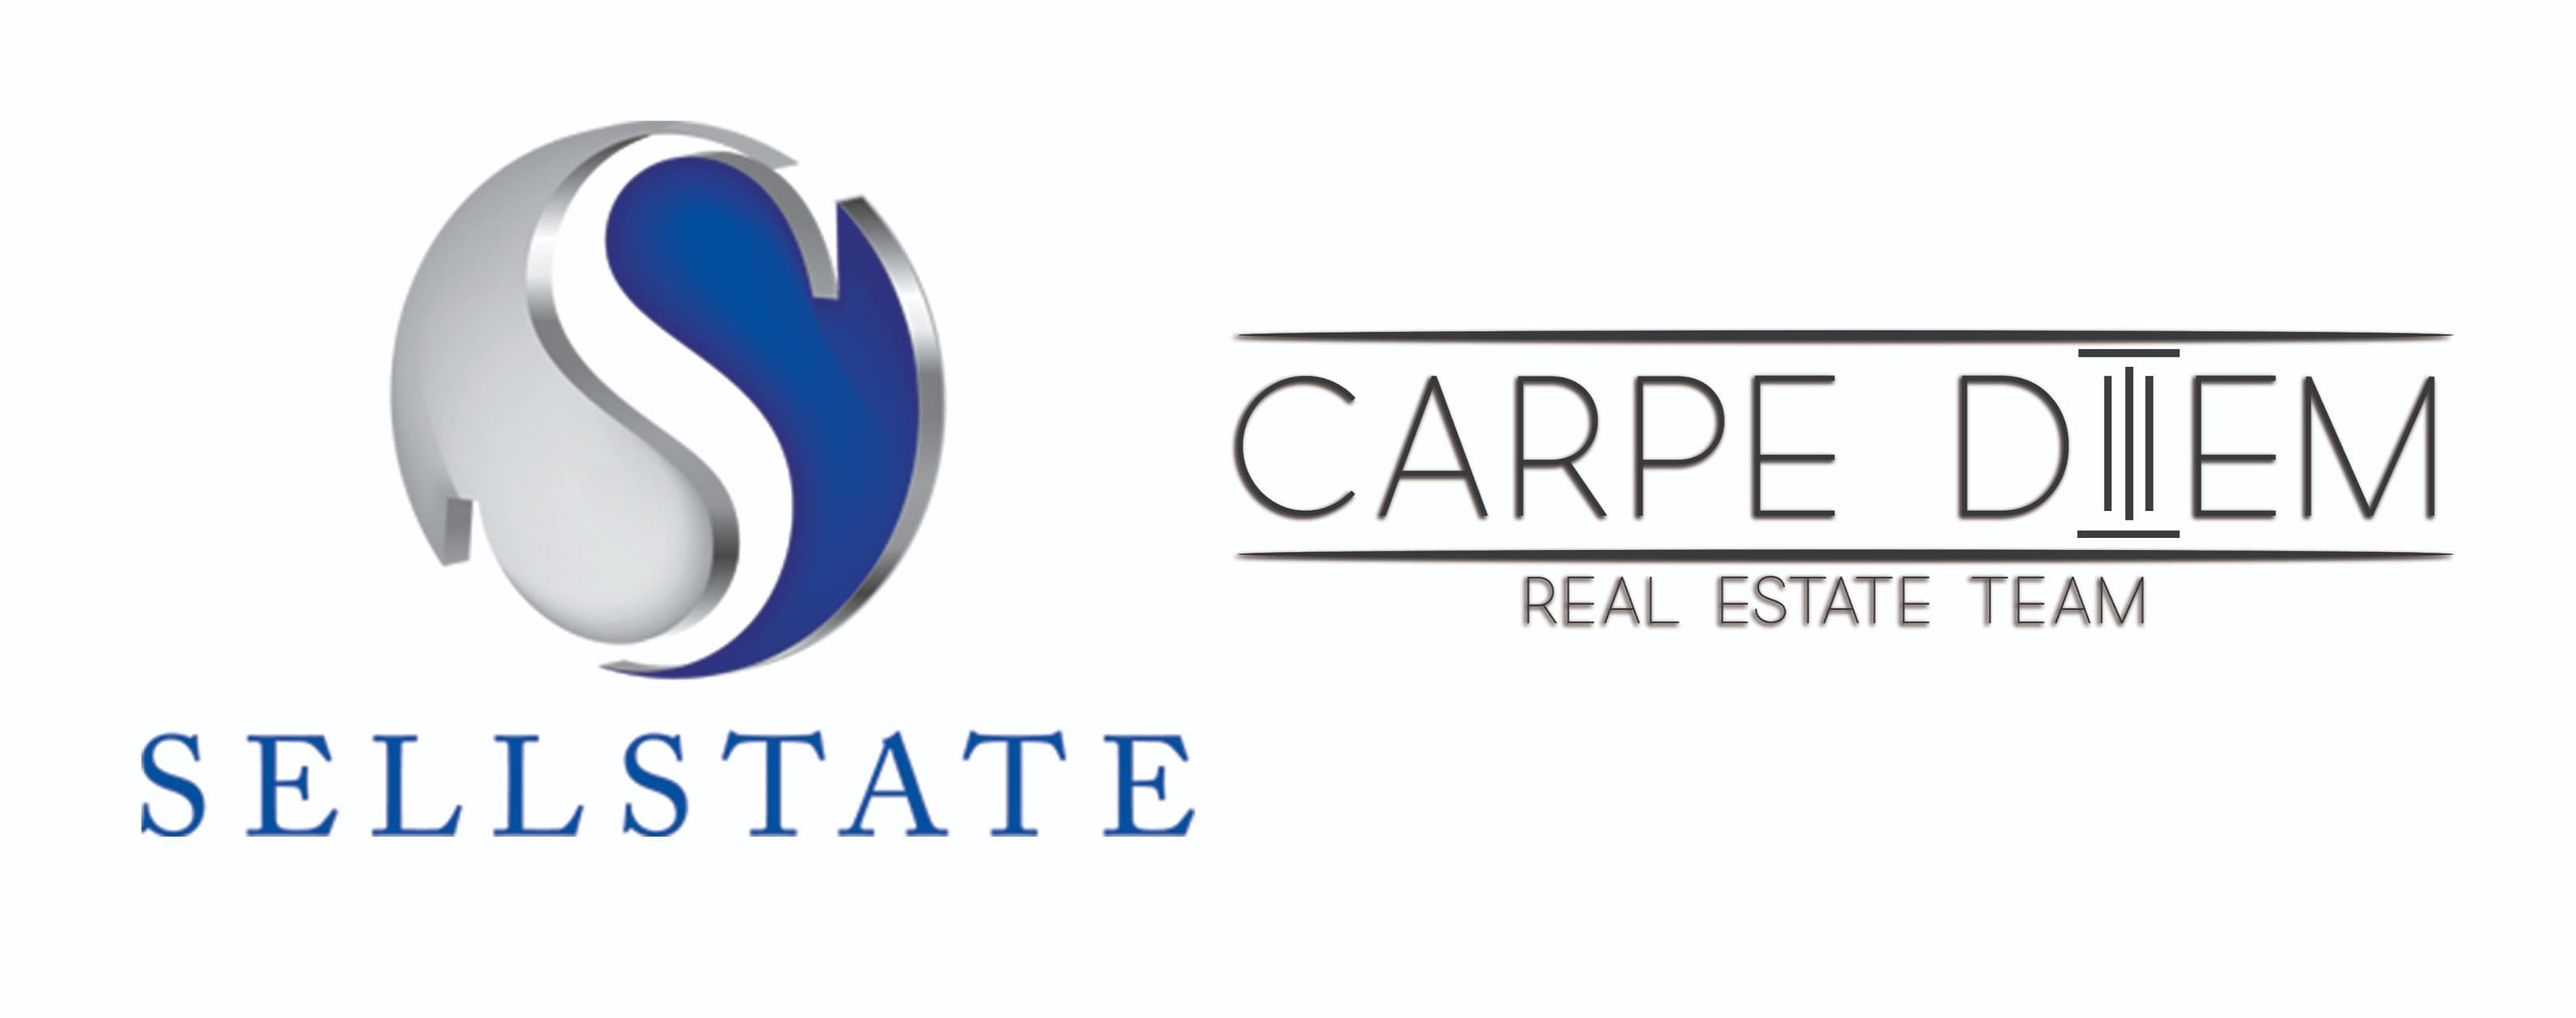 Carpe Diem Real Estate Team - Sellstate Performance Realty